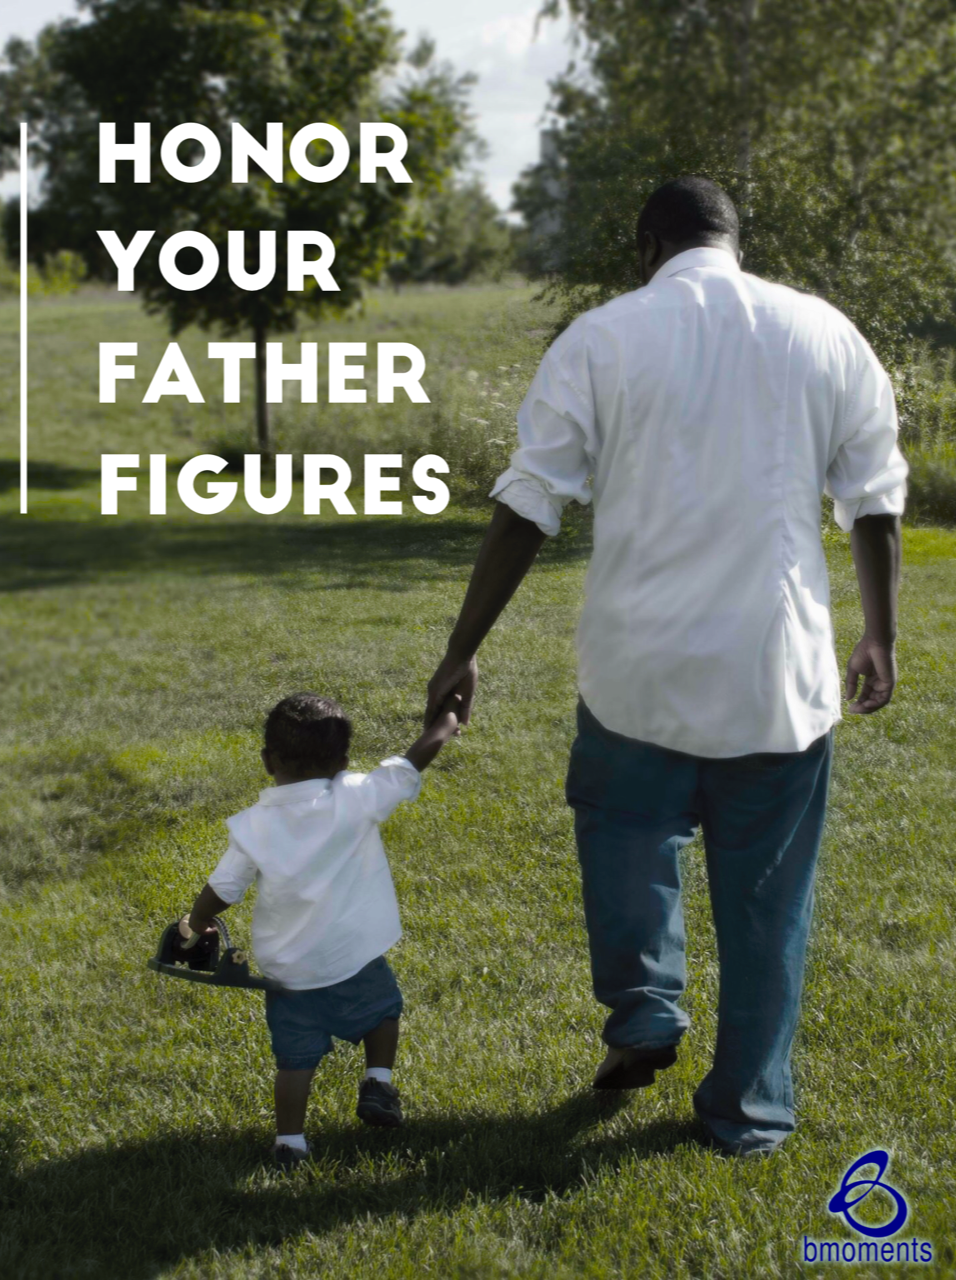 Honor Both Fathers and Father Figures